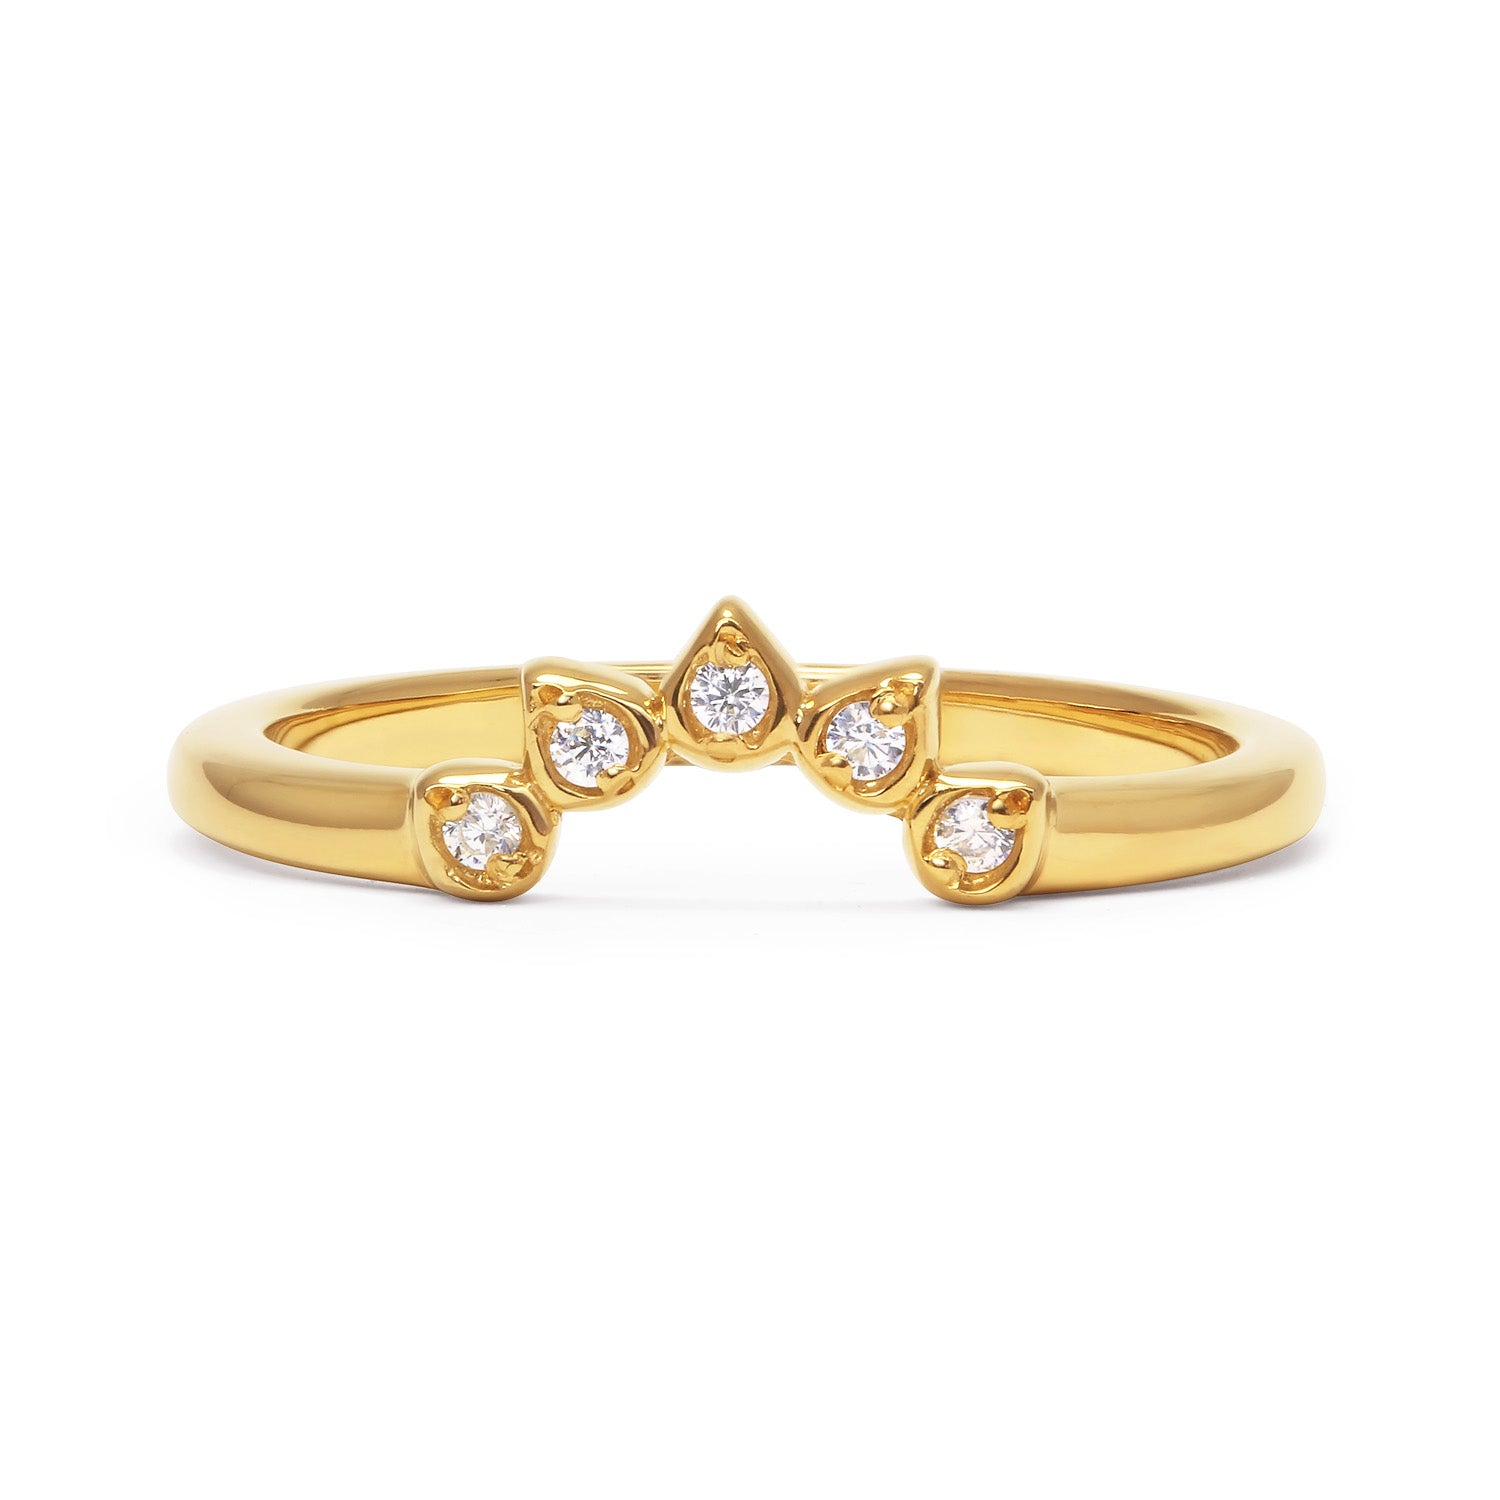 Teardrop Diamond Tiara Ethical Ring, 18ct Ethical Gold